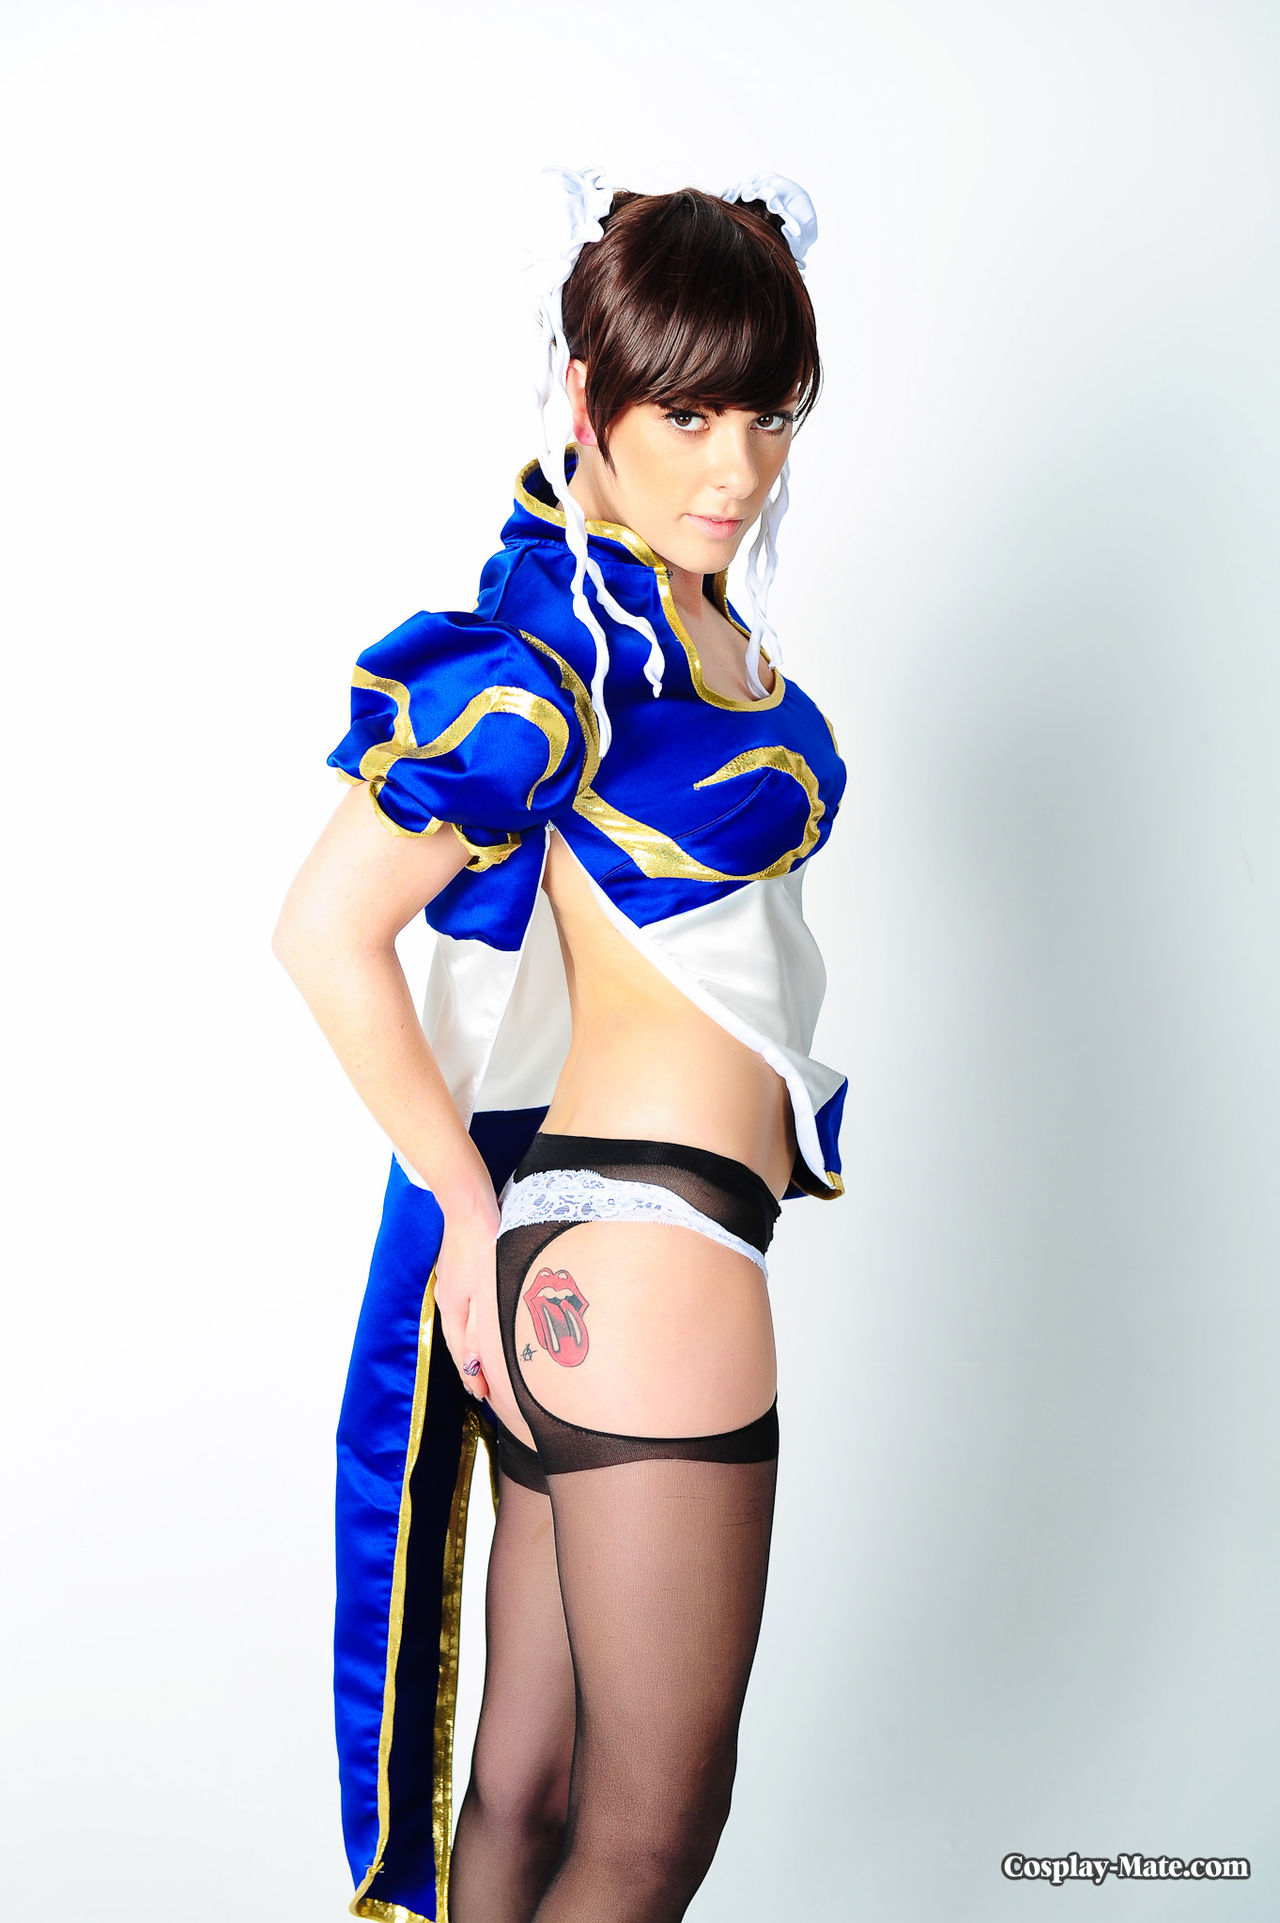 Hot chun li cosplay nude due time